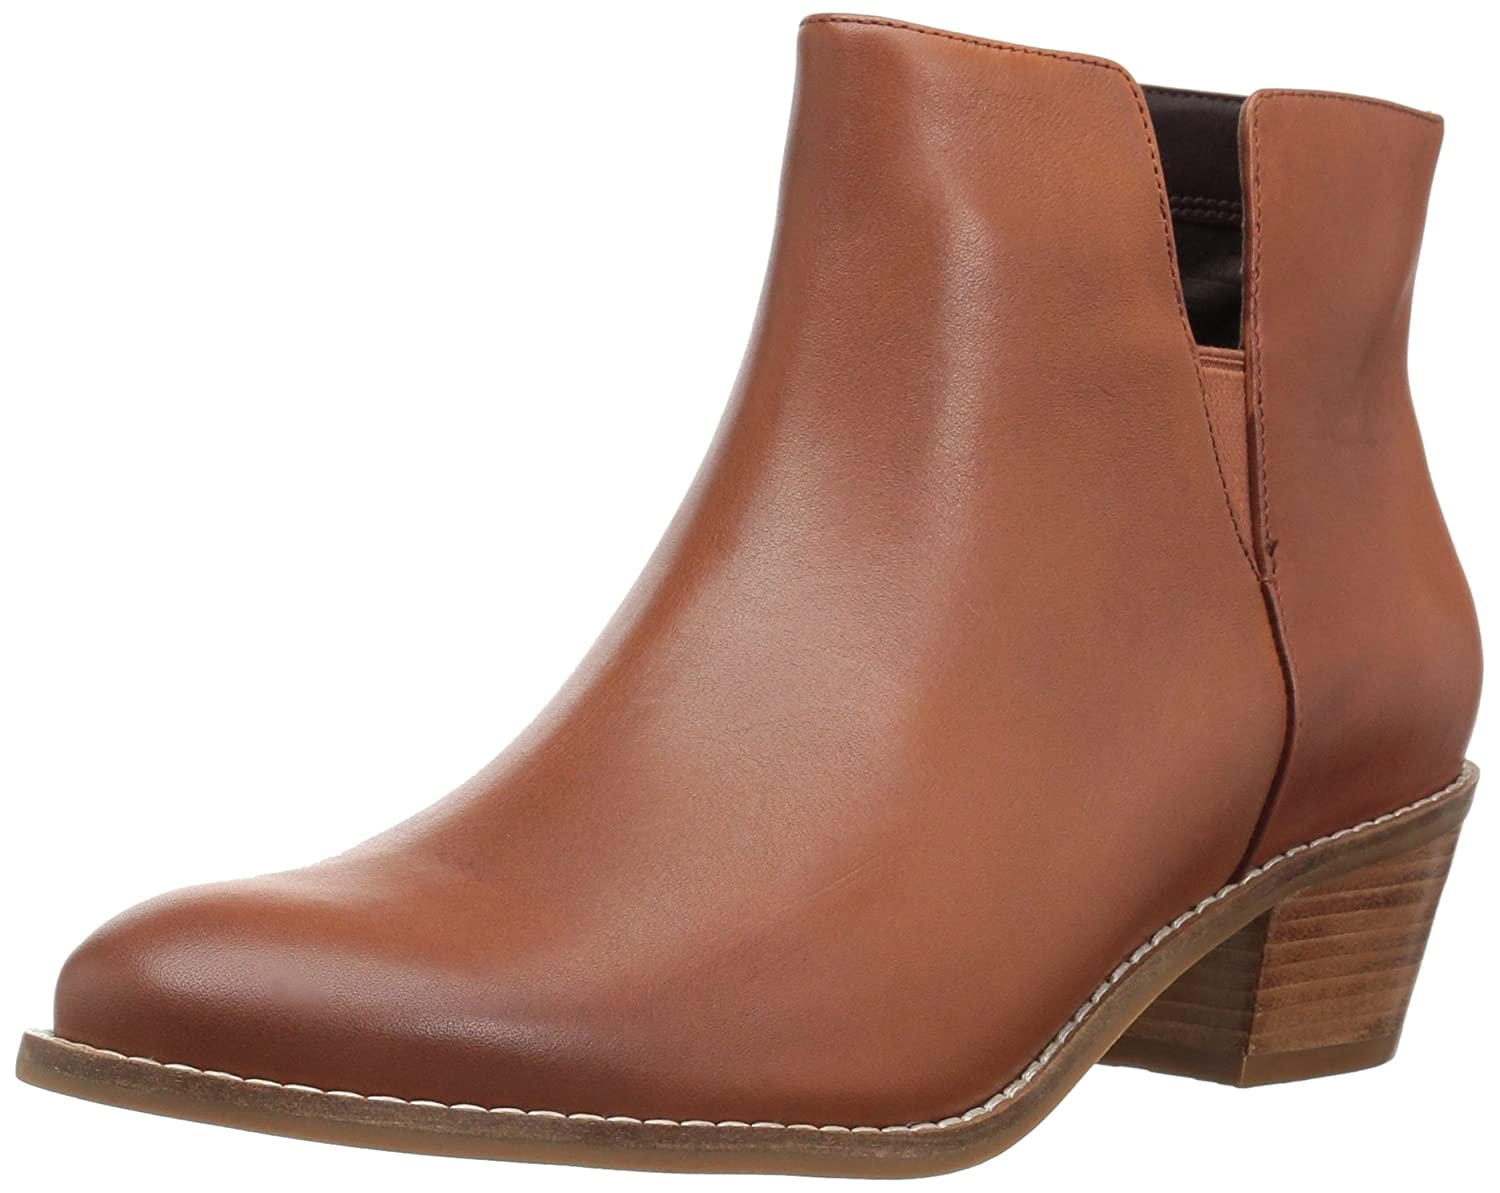 Cole Haan Women's Abbot Ankle Boot B01MUE30DY 8.5 B(M) US|British Tan